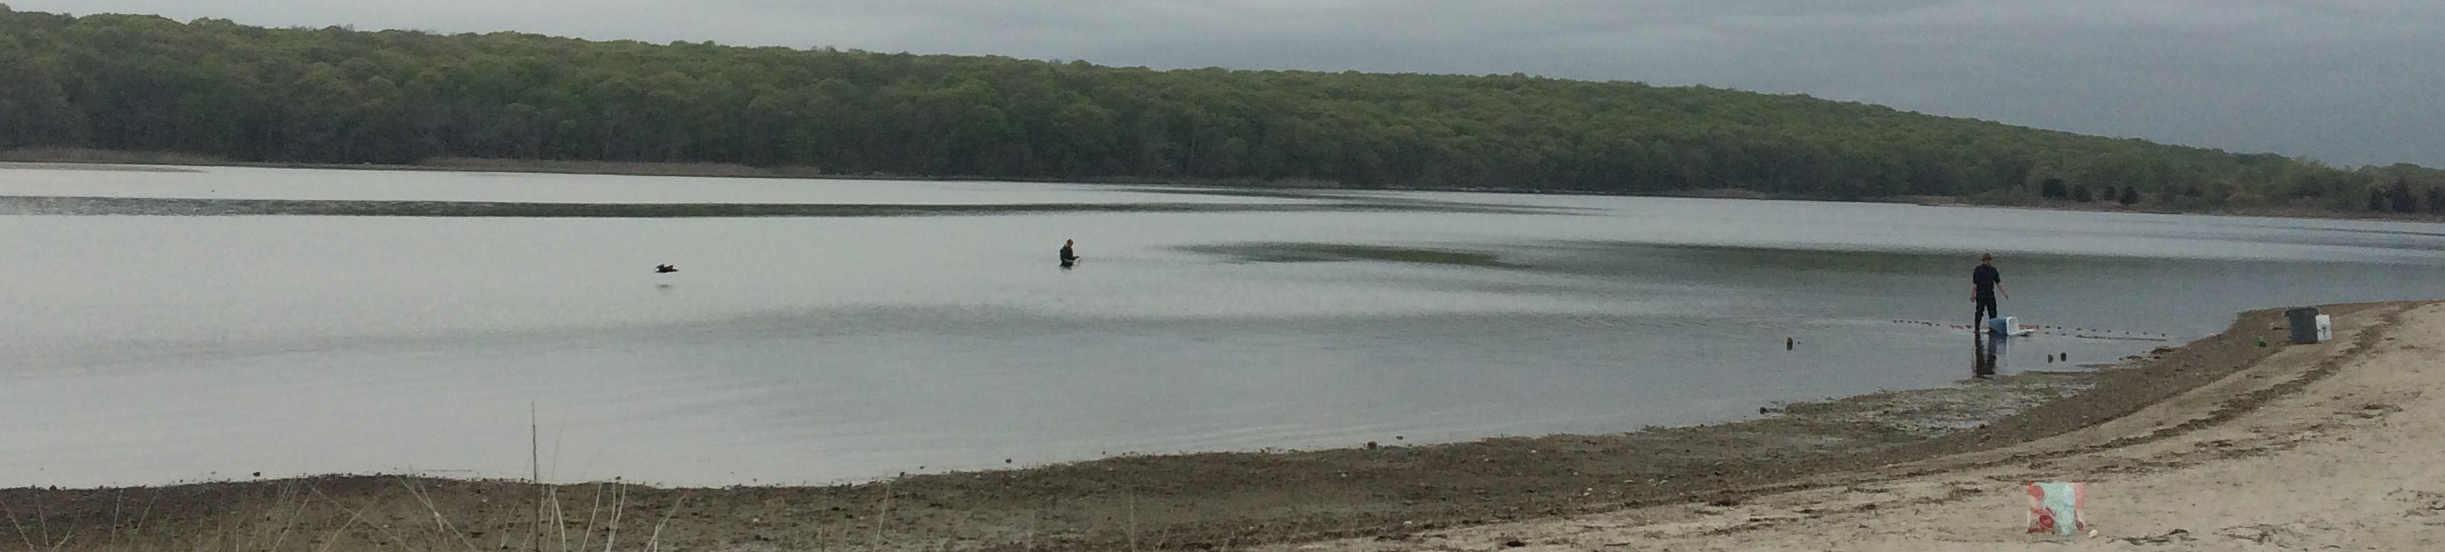 Seining and water sampling in Mumford Cove, CT